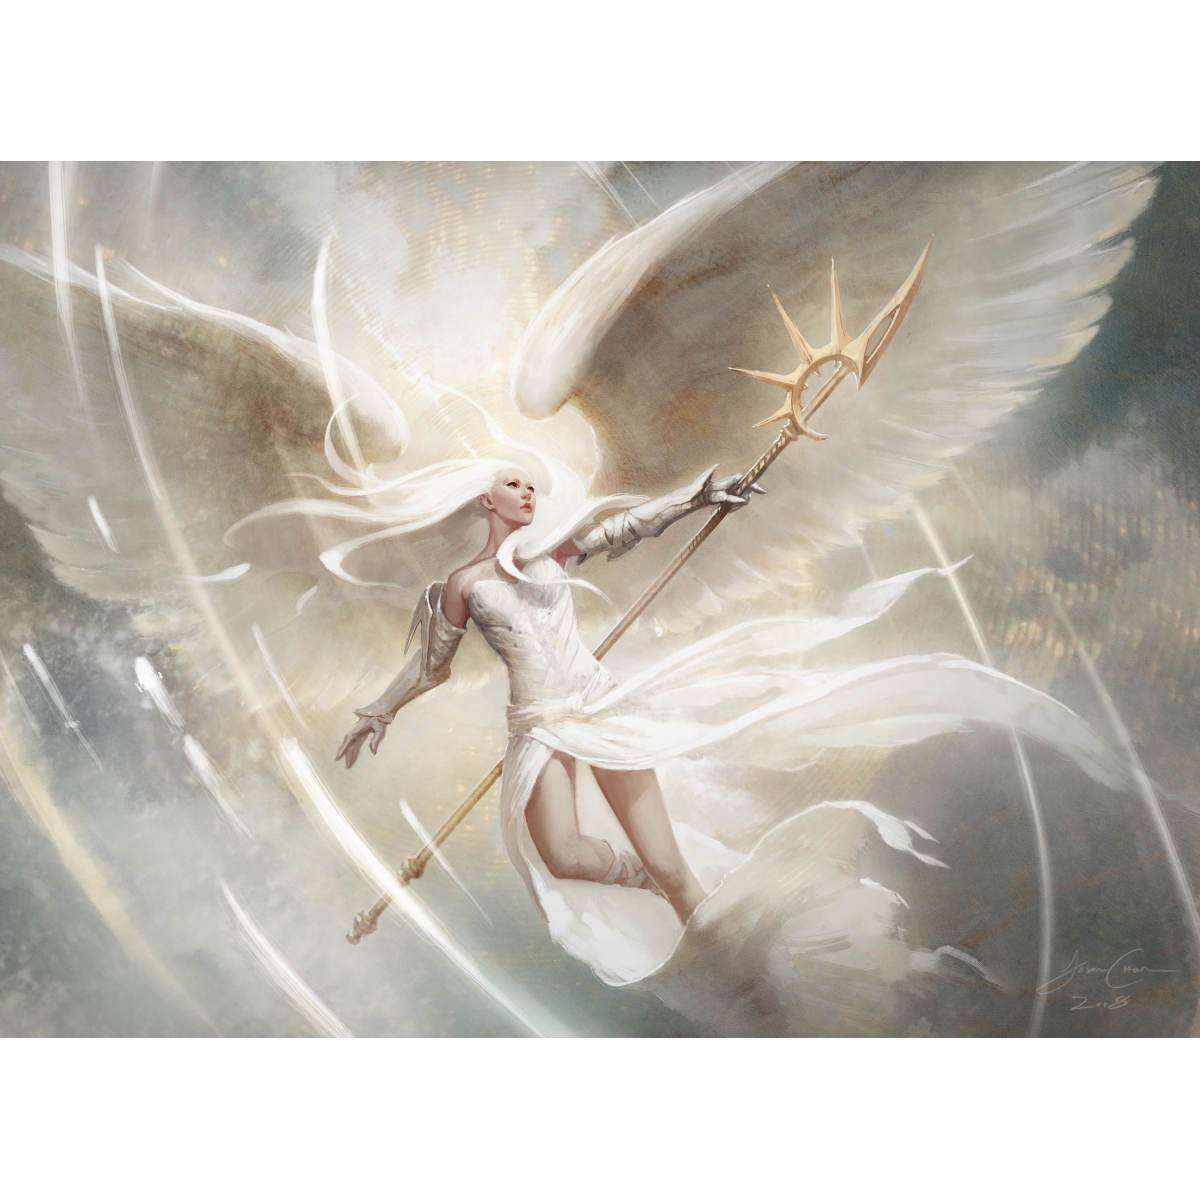 Luminous Angel Print - Print - Original Magic Art - Accessories for Magic the Gathering and other card games